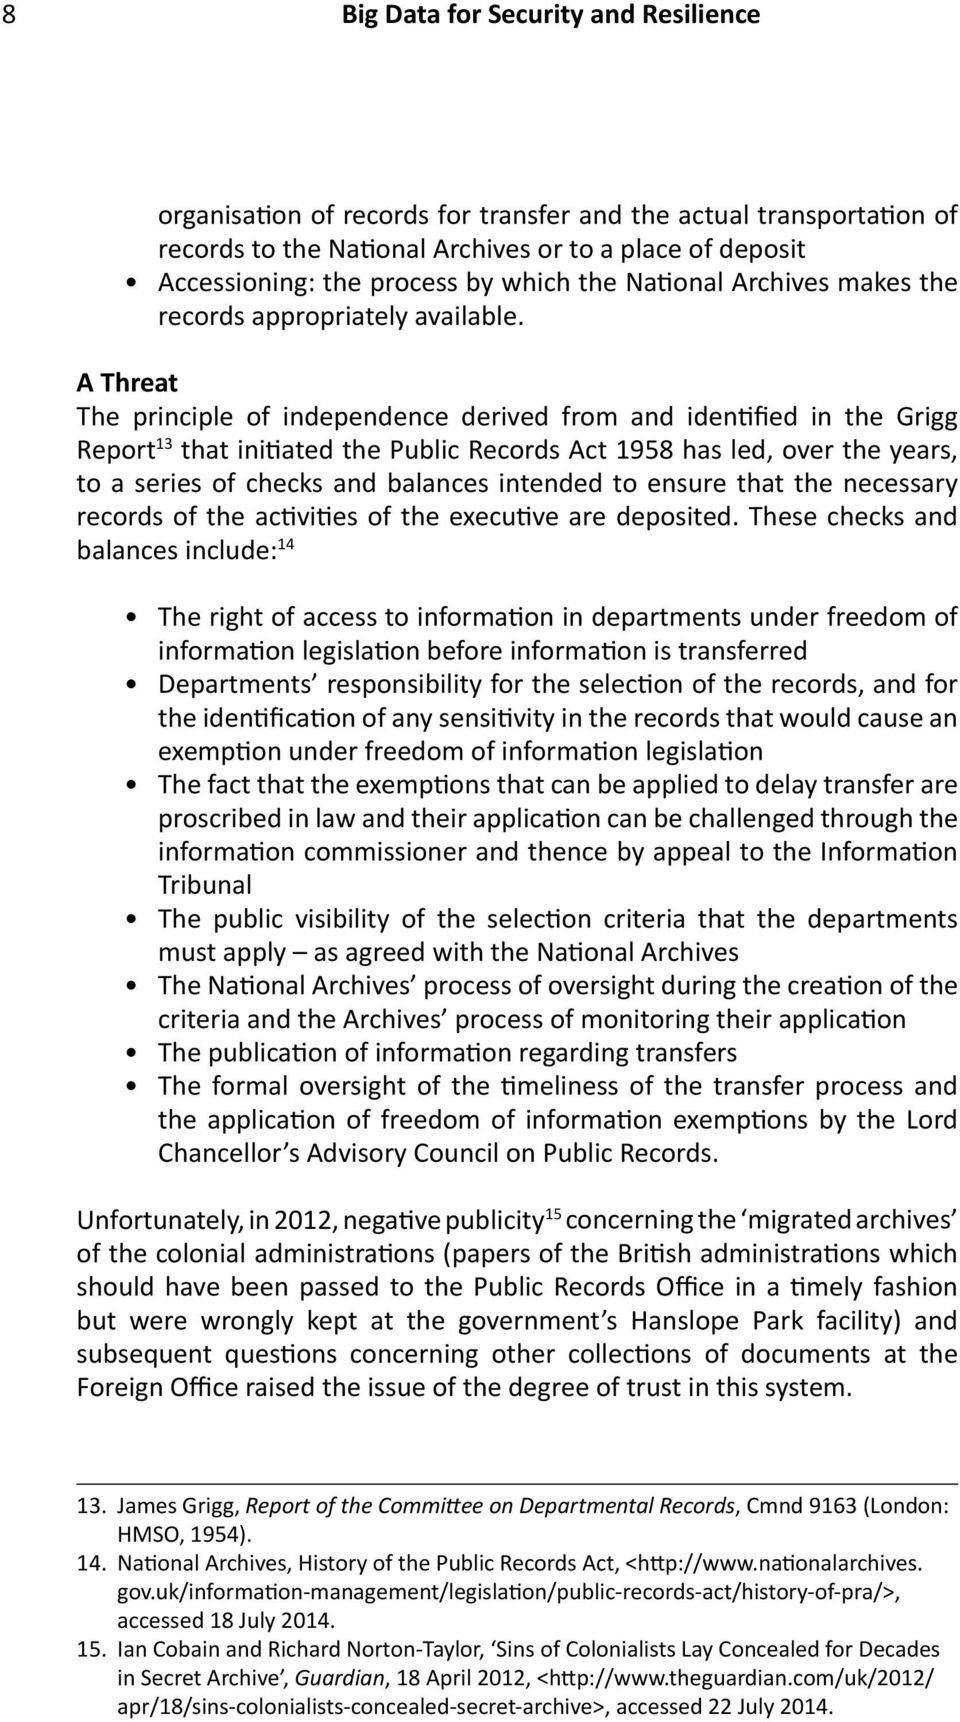 A Threat The principle of independence derived from and identified in the Grigg Report 13 that initiated the Public Records Act 1958 has led, over the years, to a series of checks and balances